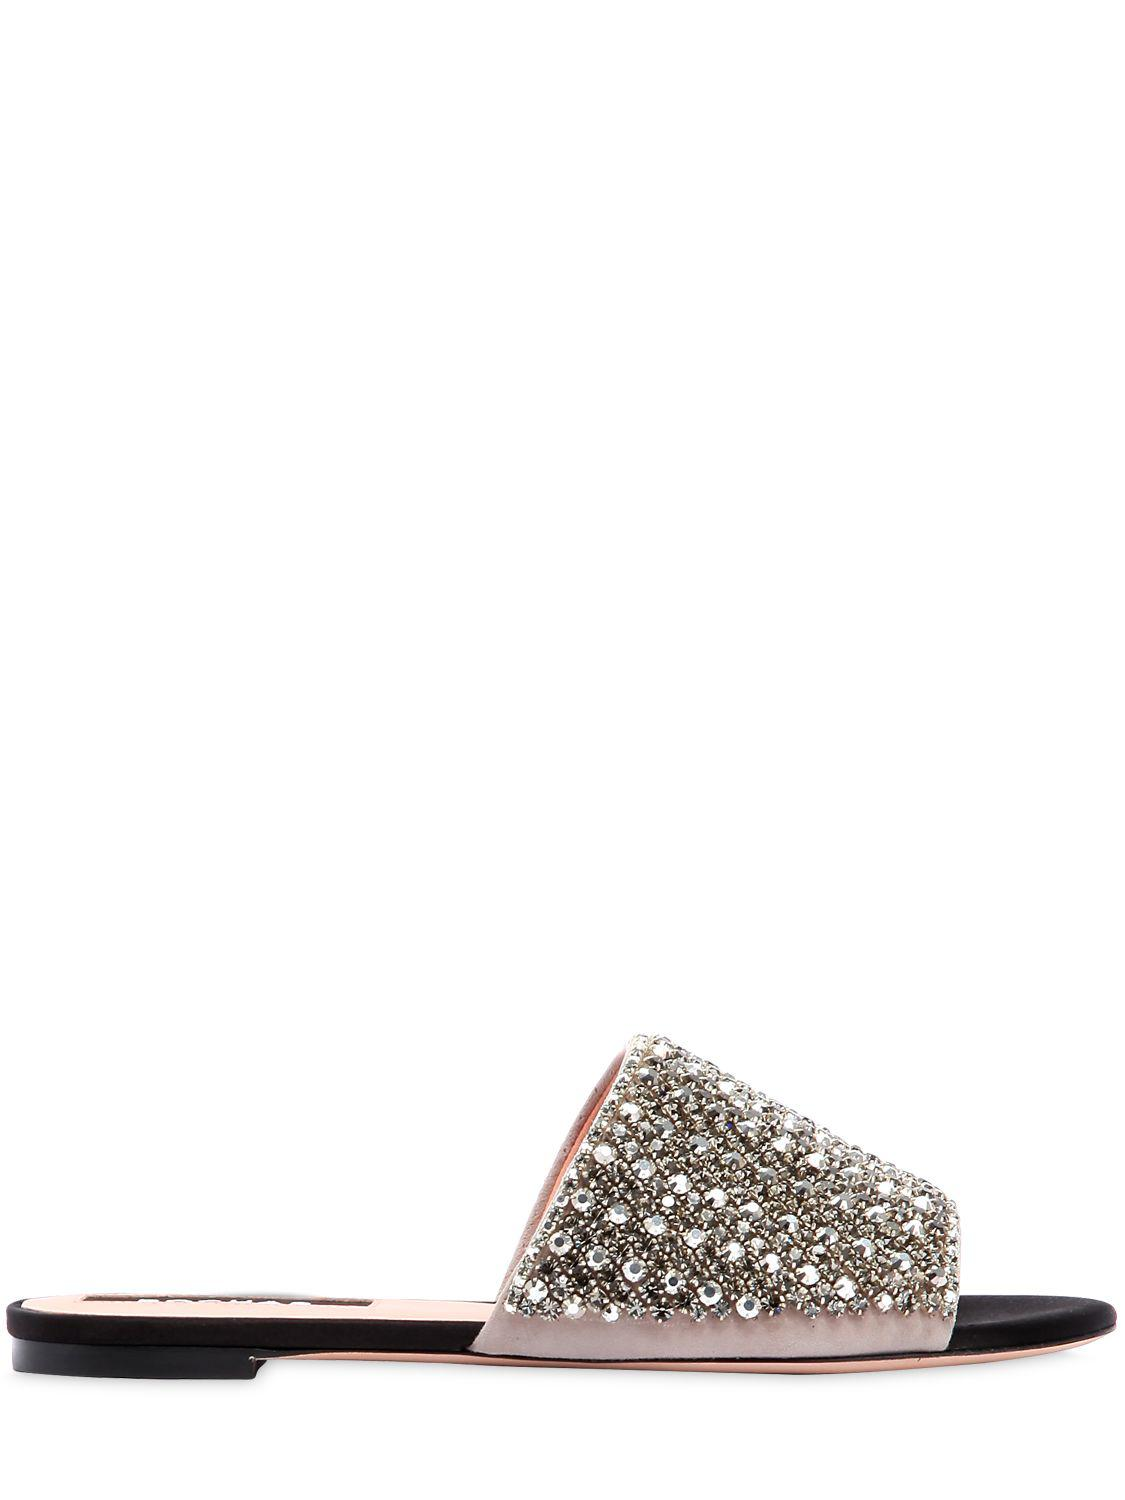 crystal embellished net sandals - Multicolour Rochas Wide Range Of Sale Online Free Shipping Best Store To Get FuwUPWXHiE